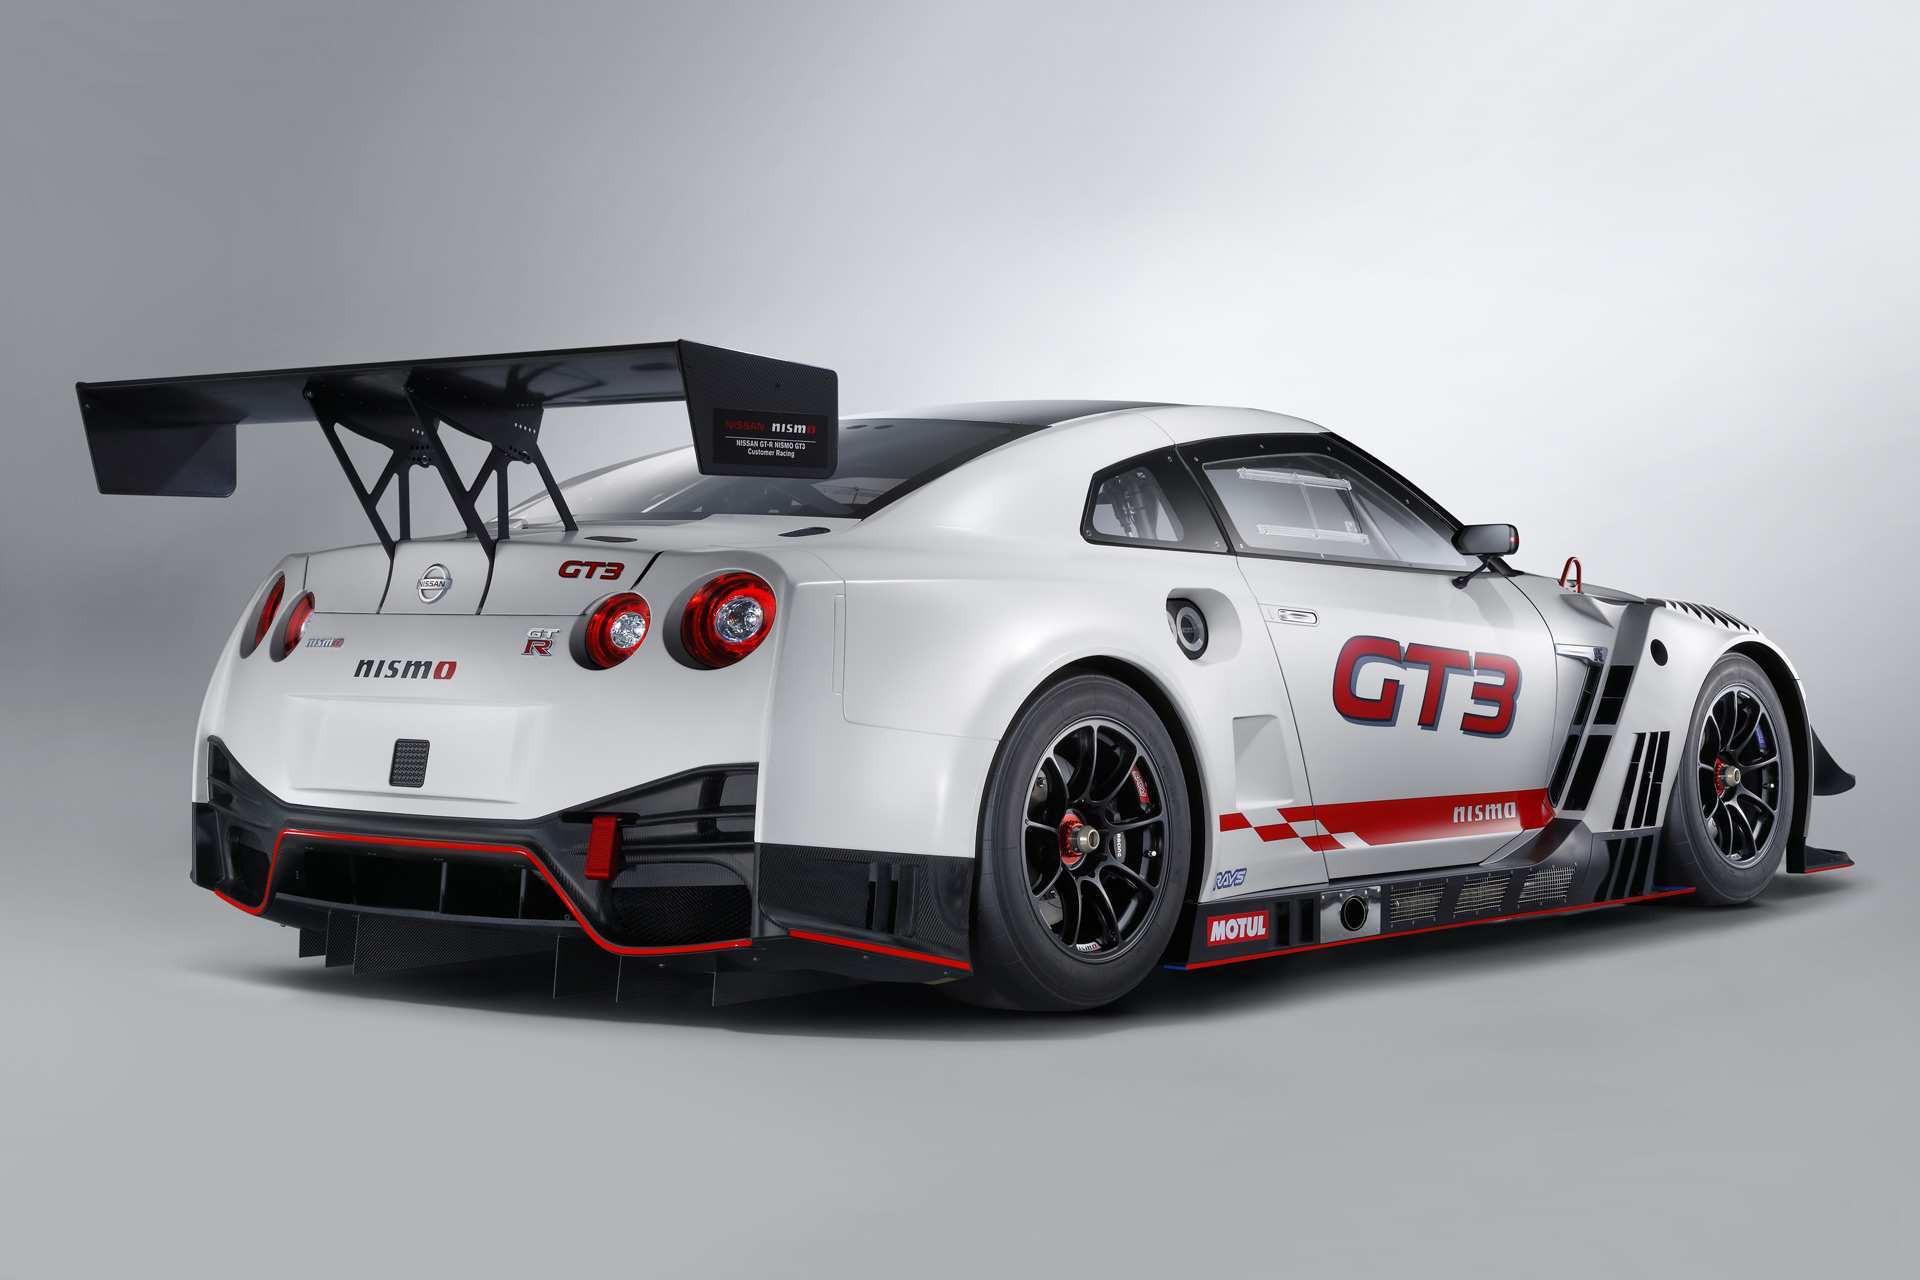 52 The Nissan 2019 Gtr Images